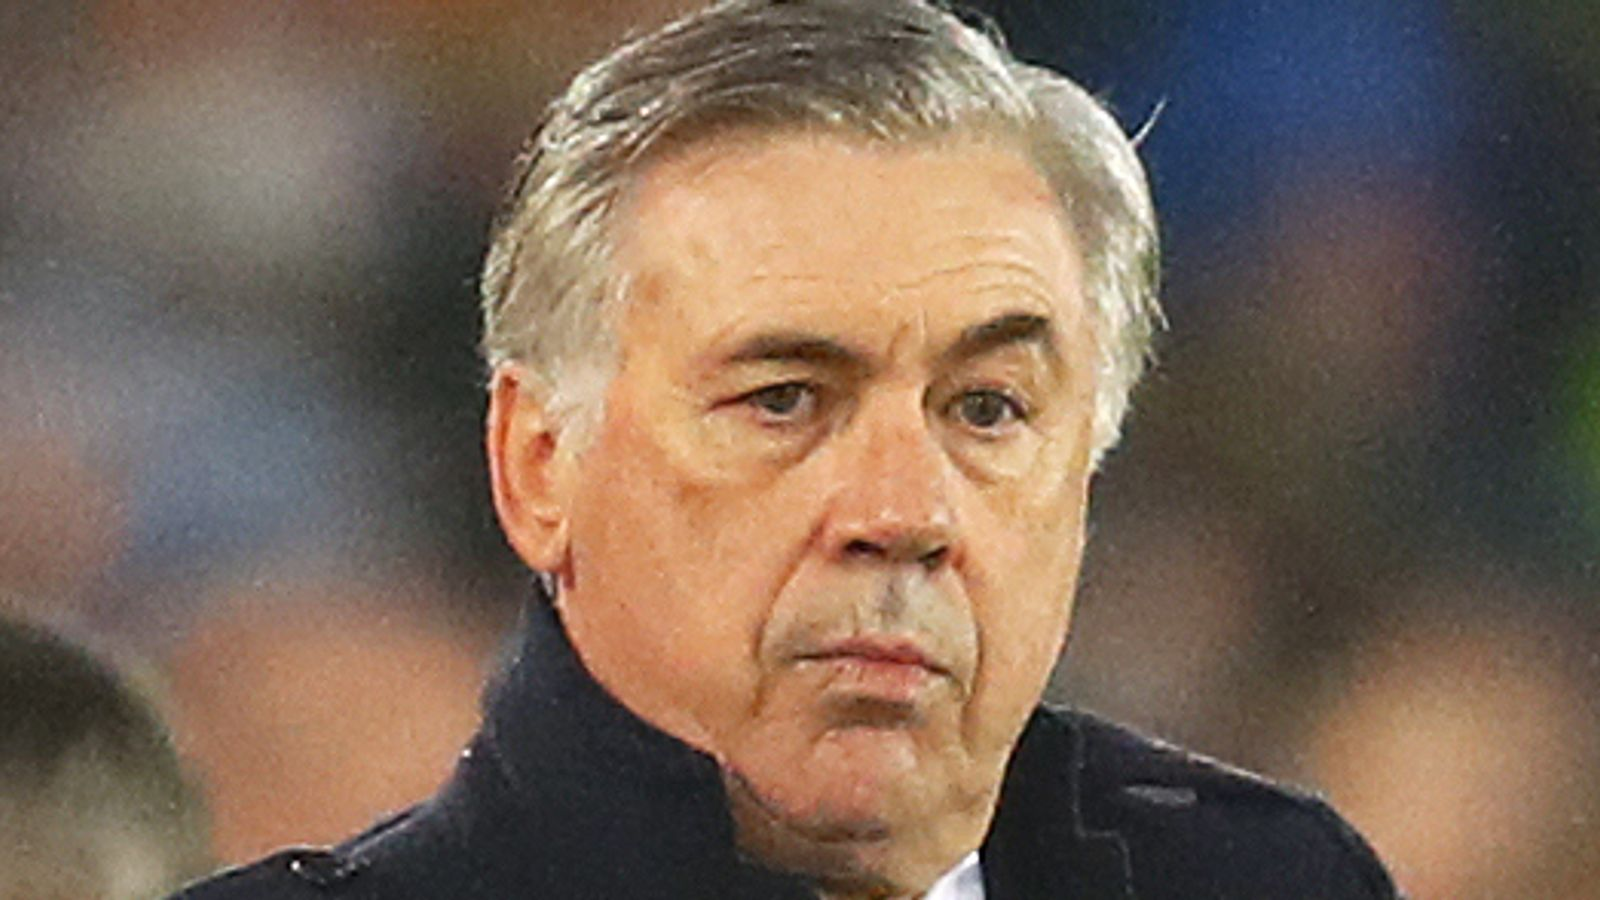 Ancelotti: No plans to sign striker in January